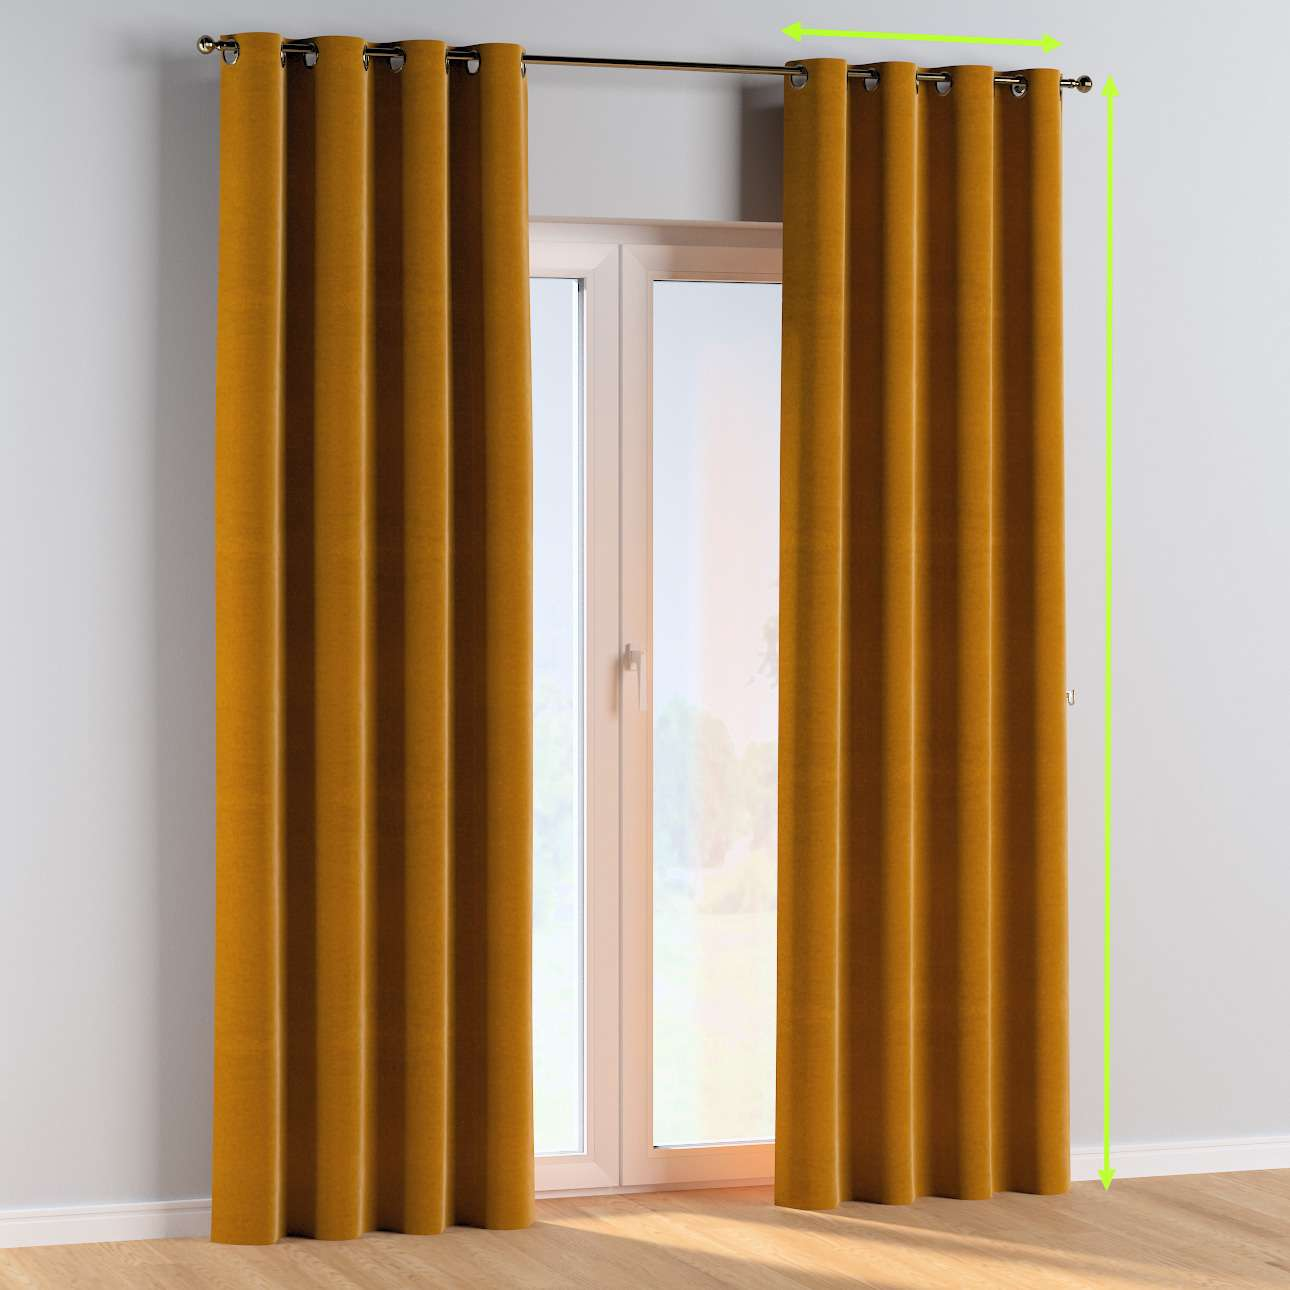 Eyelet curtains in collection Posh Velvet, fabric: 704-23